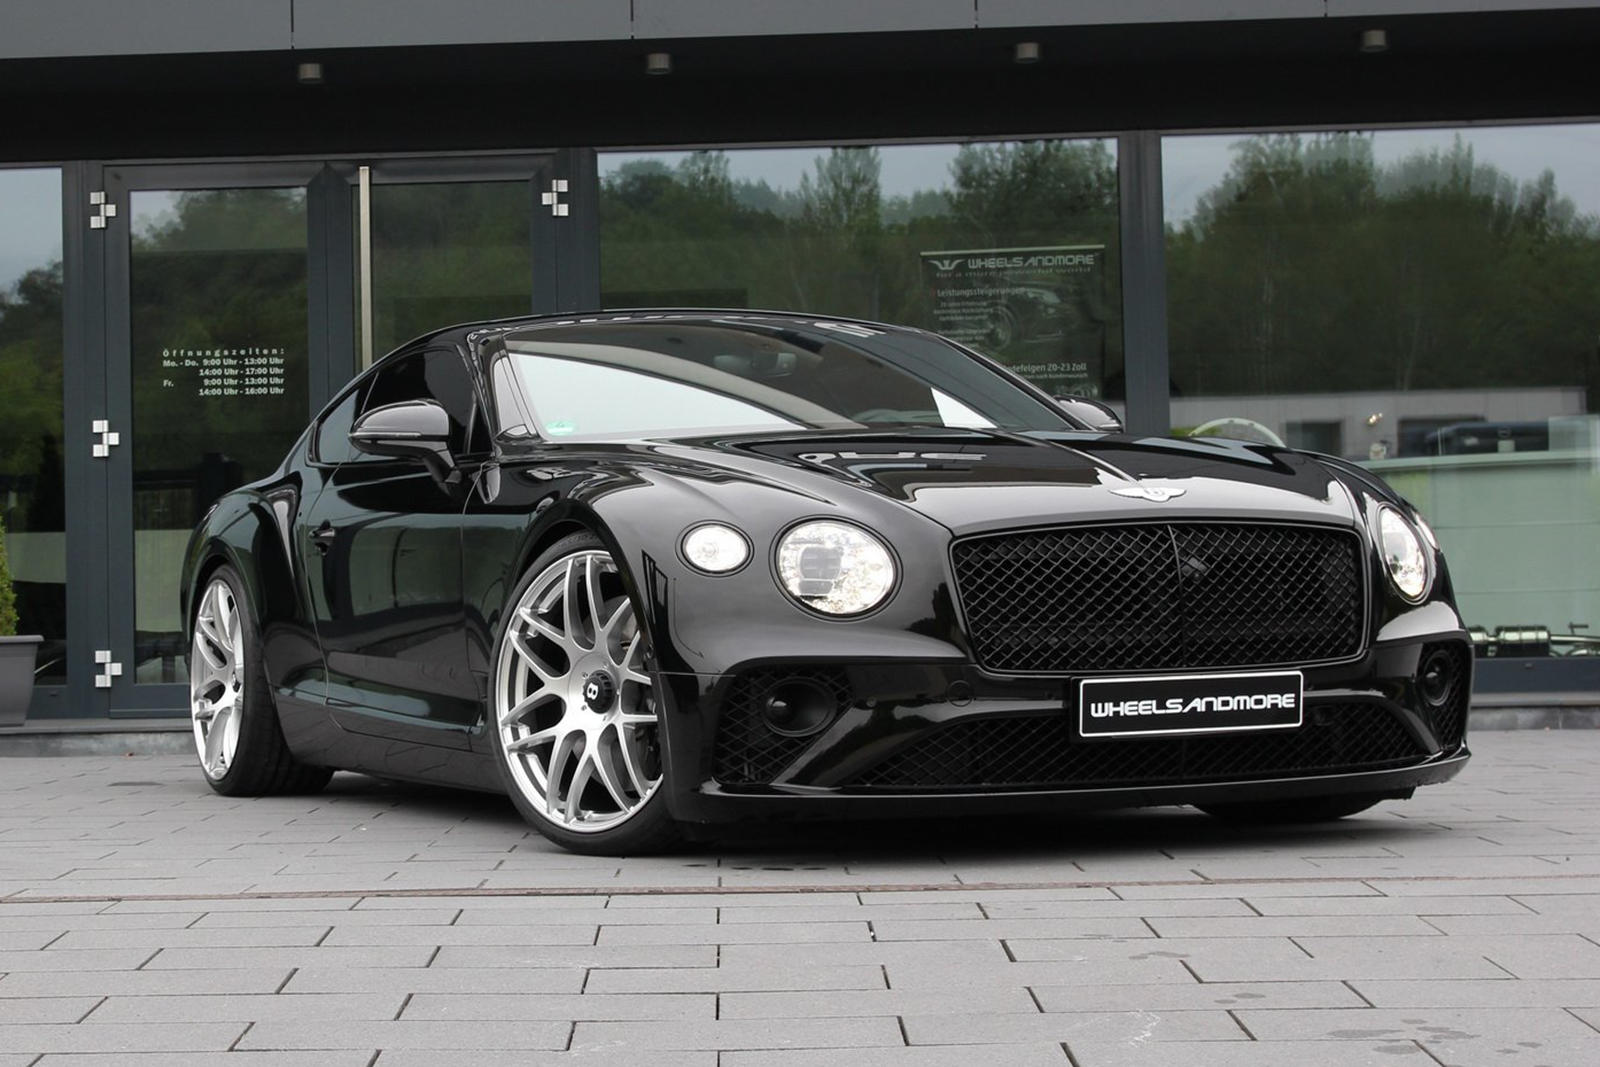 Carbuzz On Twitter Modified Bentley Continental Gt Is An 800 Hp Monster Custom Continental Gt Described As A Porsche Killer Coupe Grandtourers Luxury Tuning Read Https T Co Xd4lztw0hu Https T Co 6znli6ecne